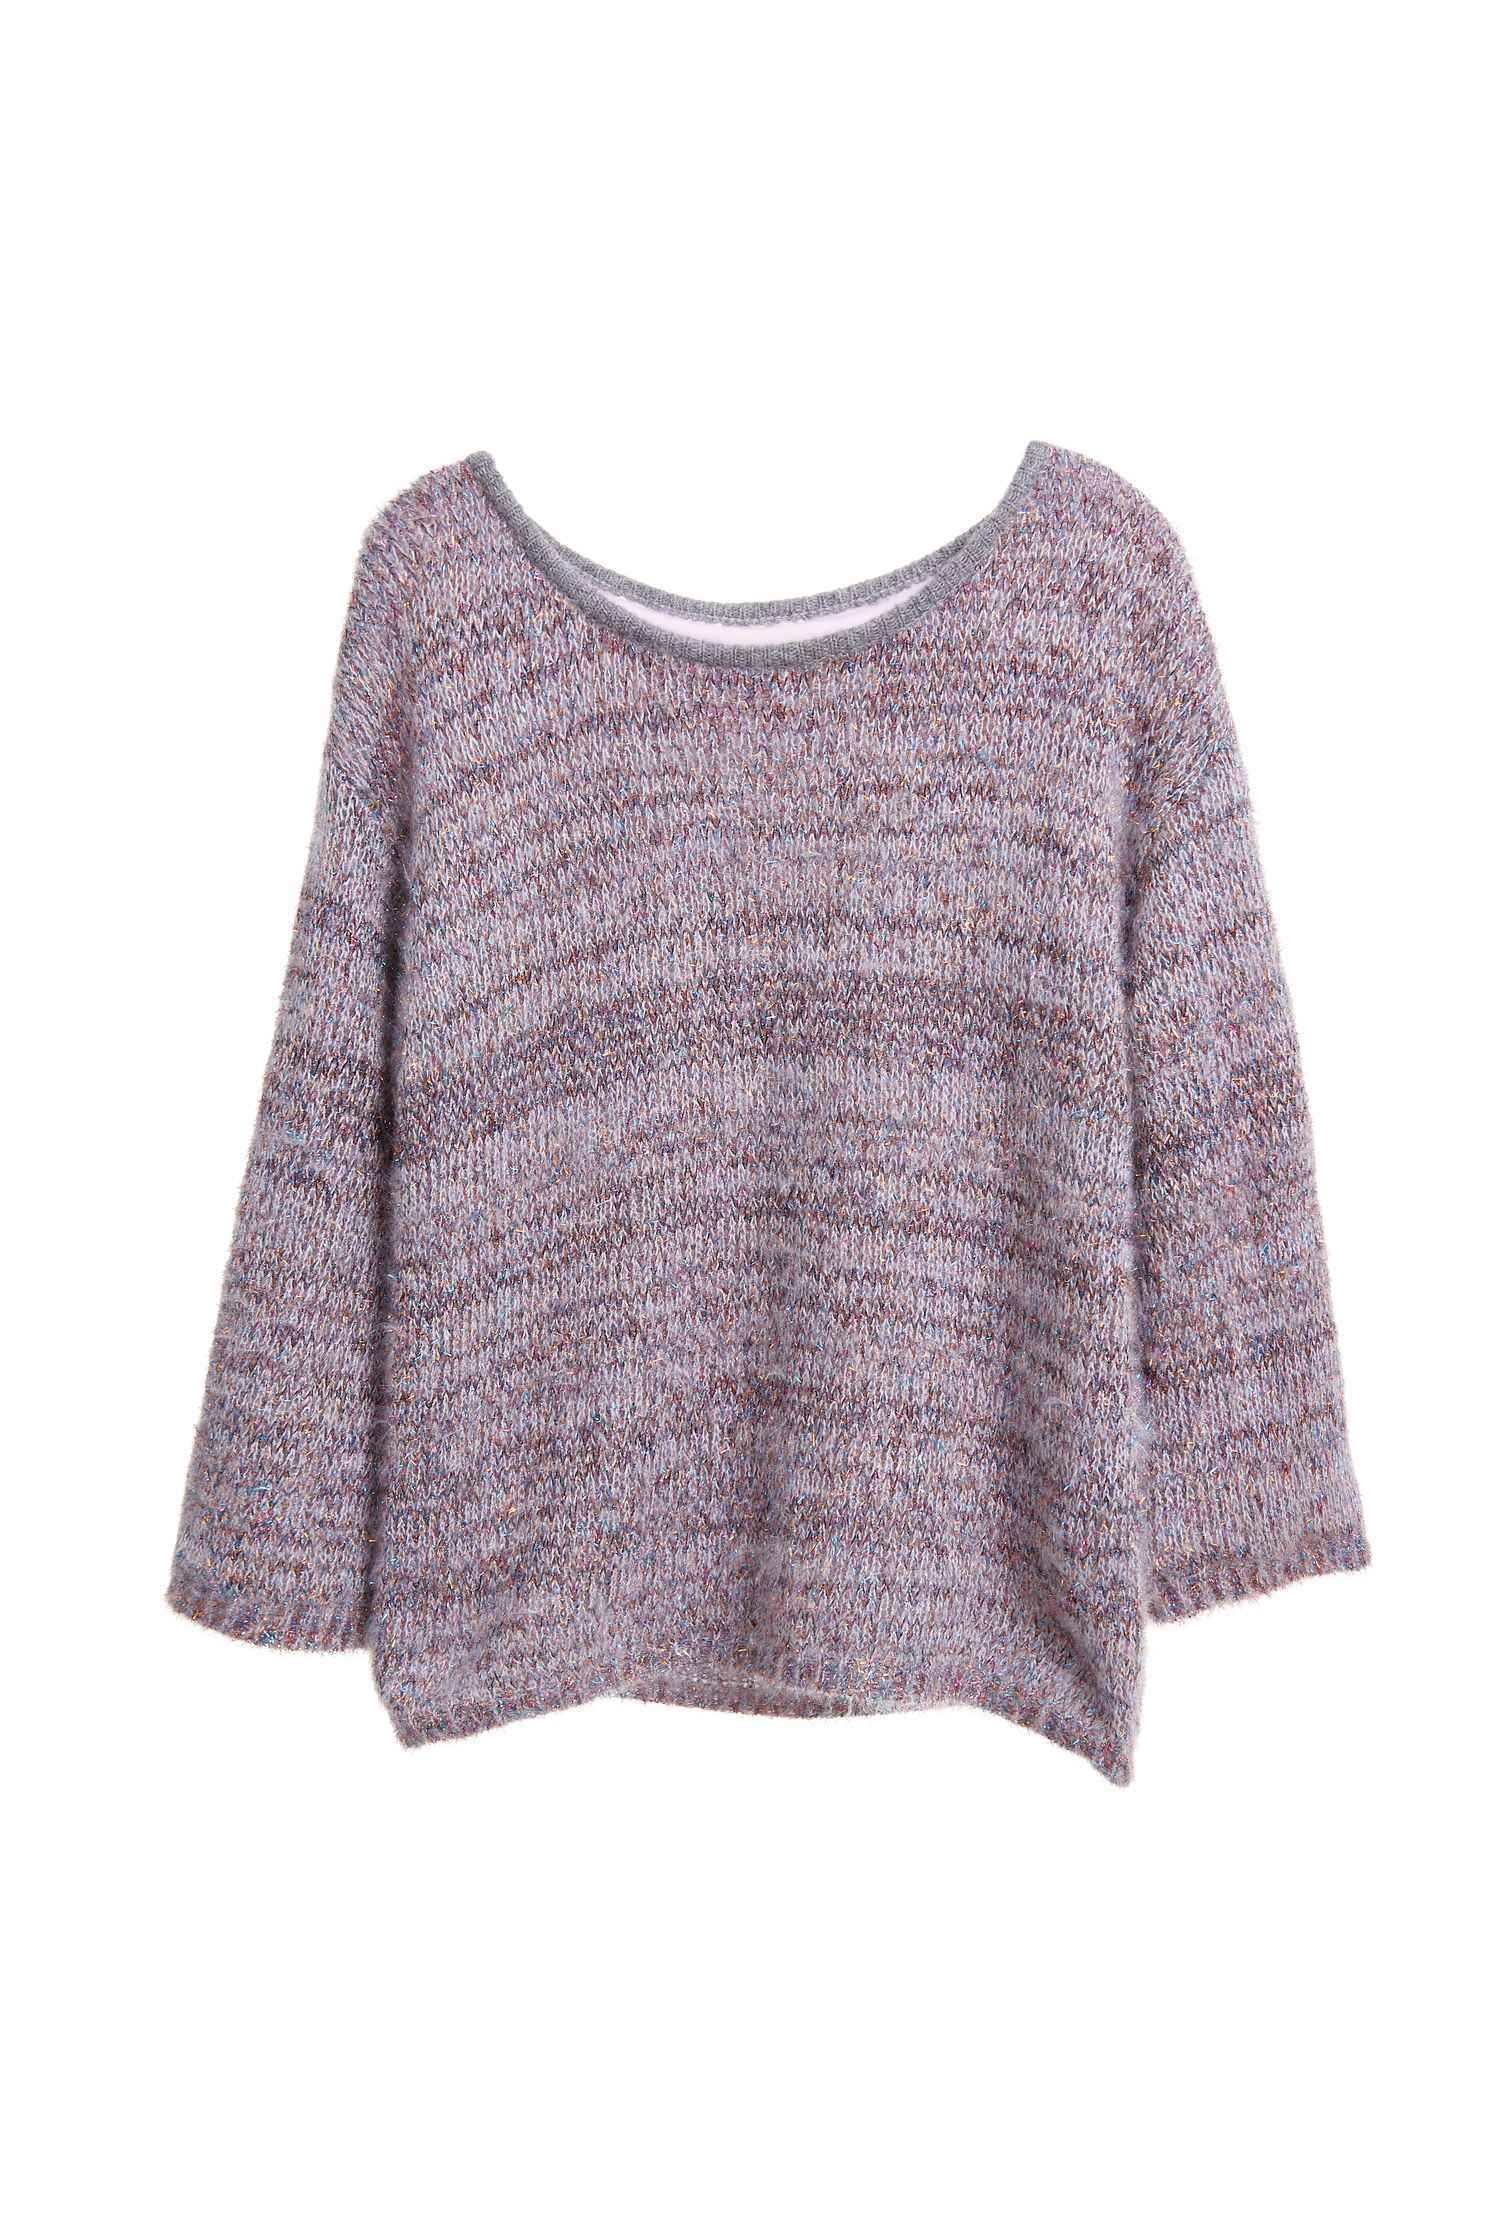 Glitter luxury knitted top